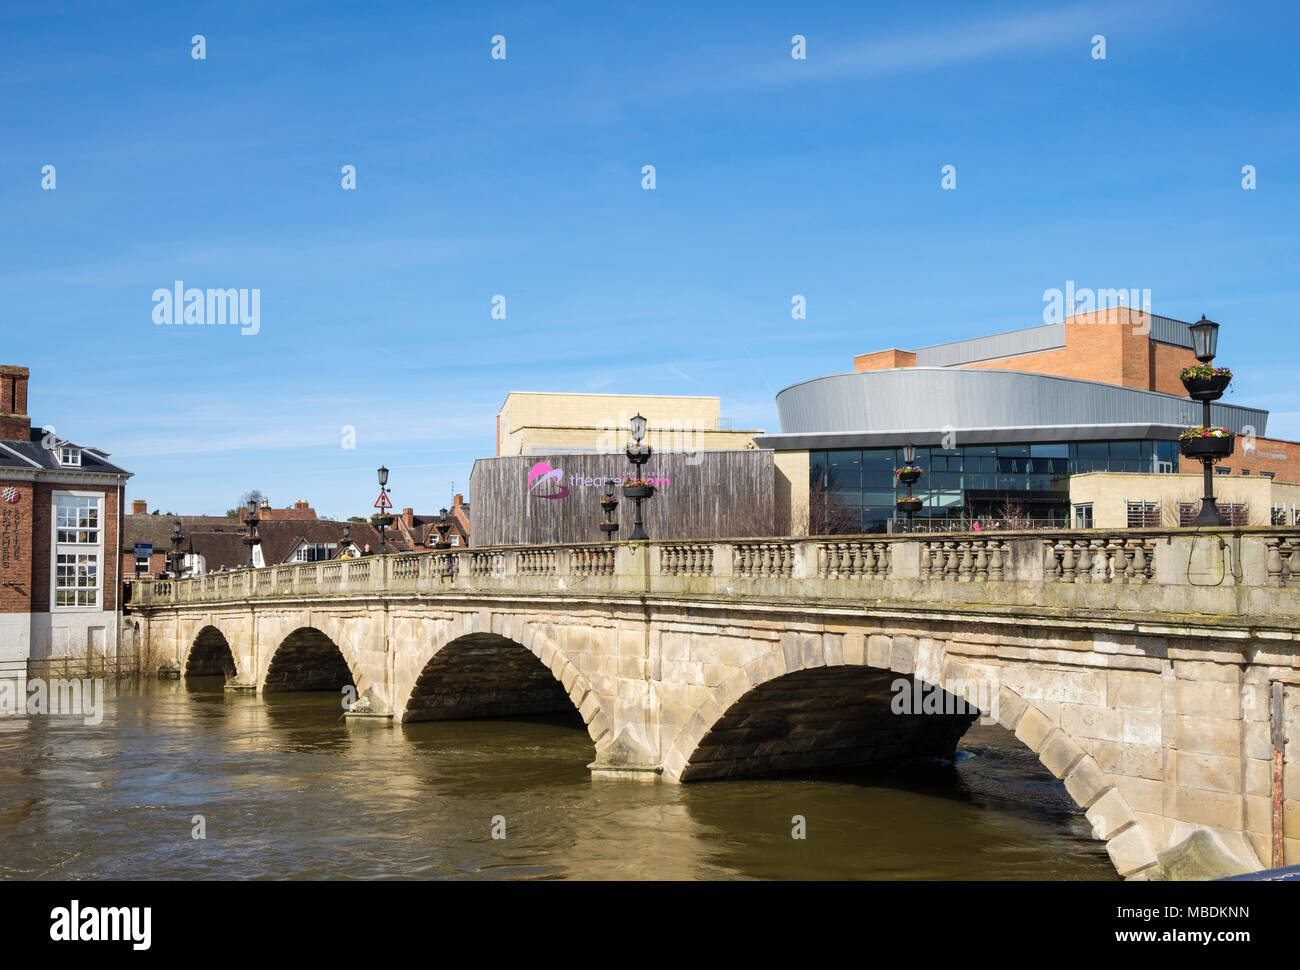 The Welsh Bridge over the River Severn with high water level and TheatreSevern beyond. Shrewsbury, Shropshire, West Midlands, England, UK, Britain - Stock Image